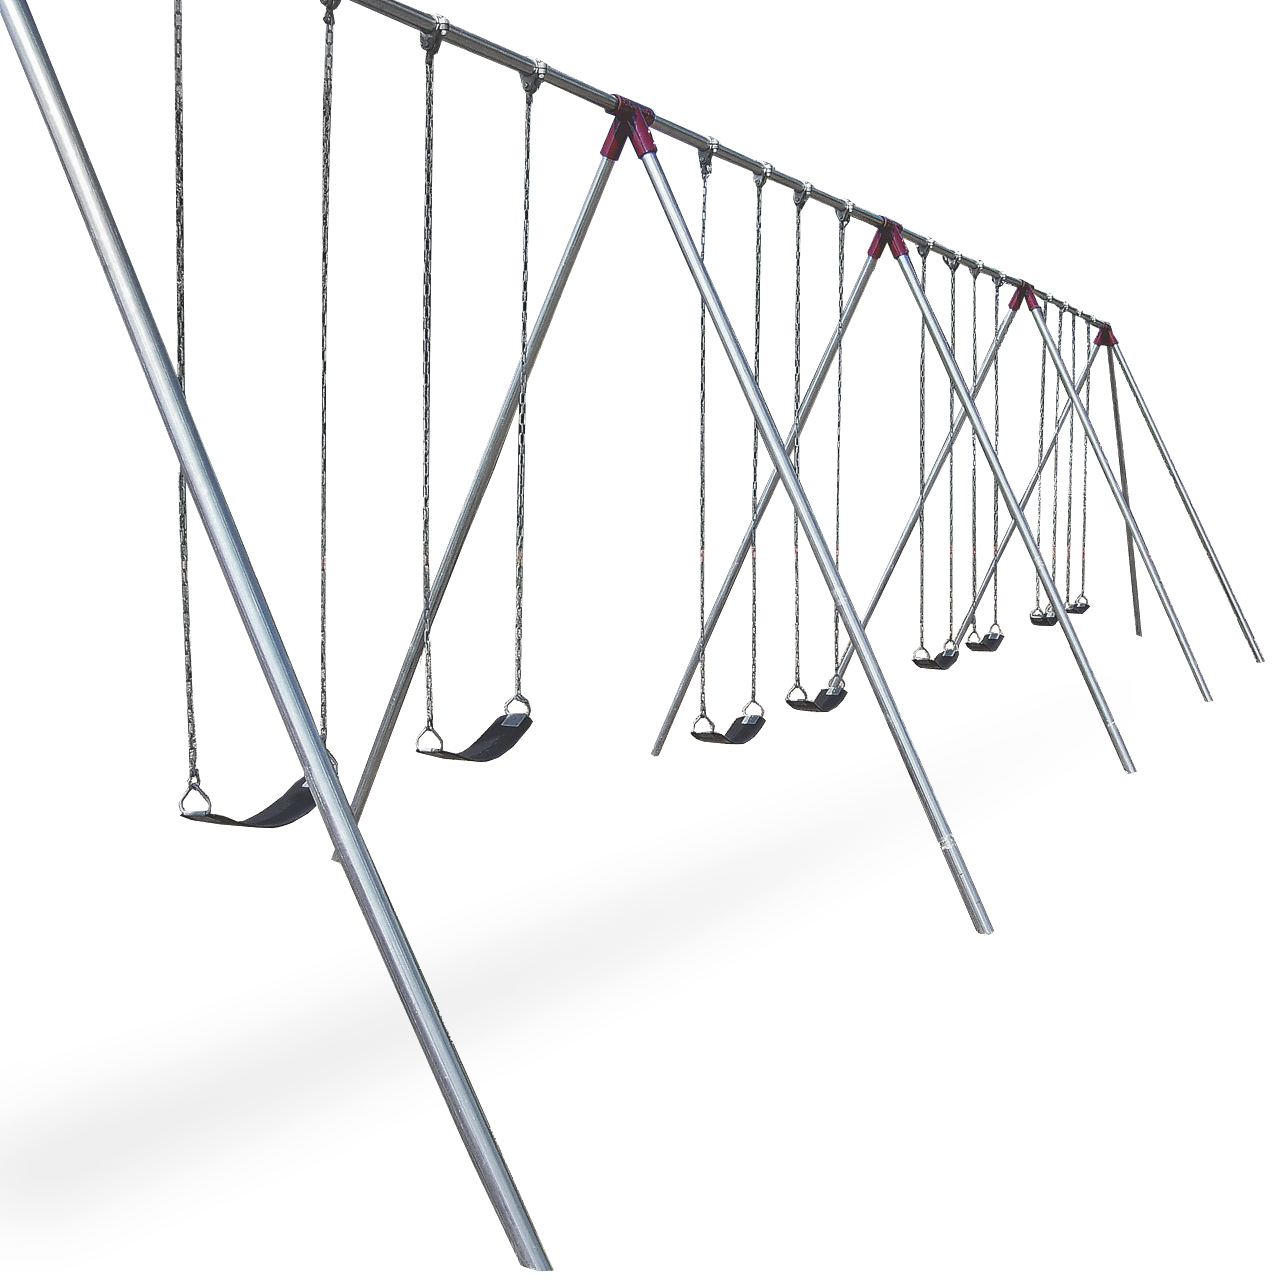 Cots moreover Children Playarea furthermore Tripod Swing 8 Foot moreover Column Like I See Em Playground additionally Axess 5 shelf bookcase. on toddler outdoor play equipment